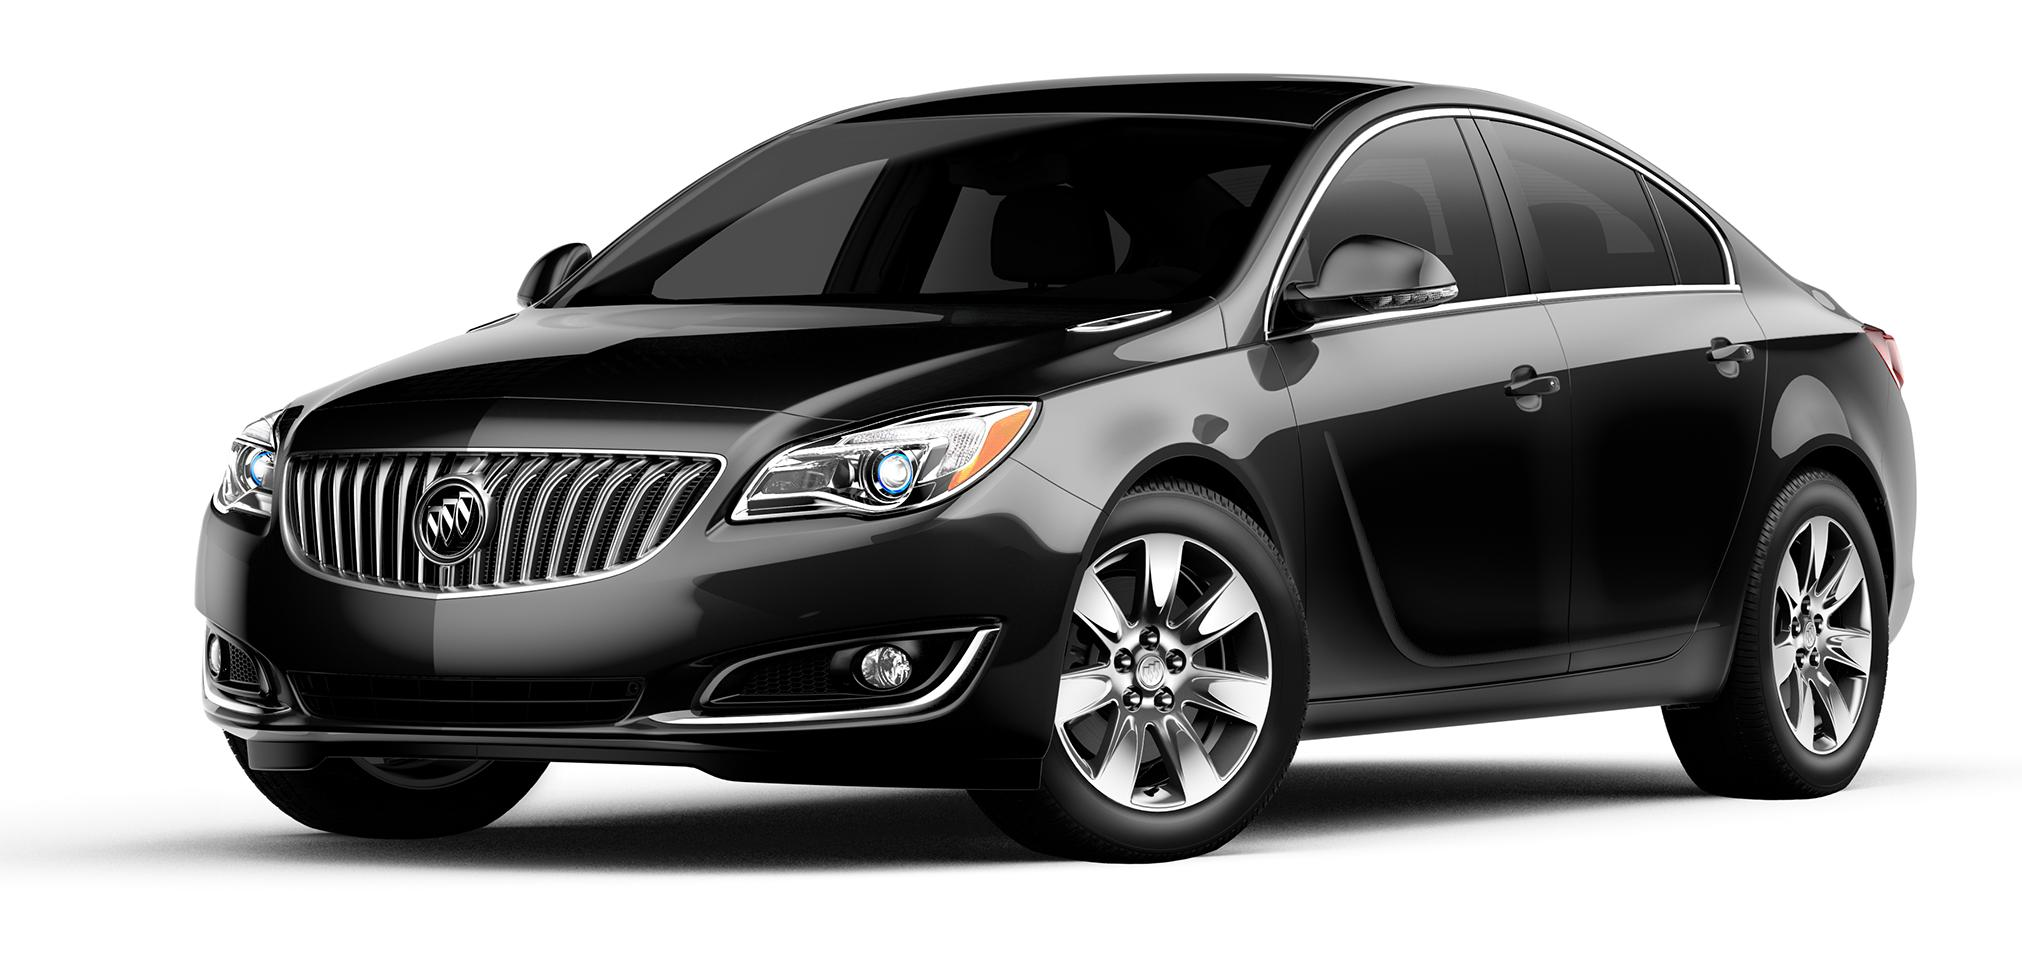 2017 Buick Regal Black